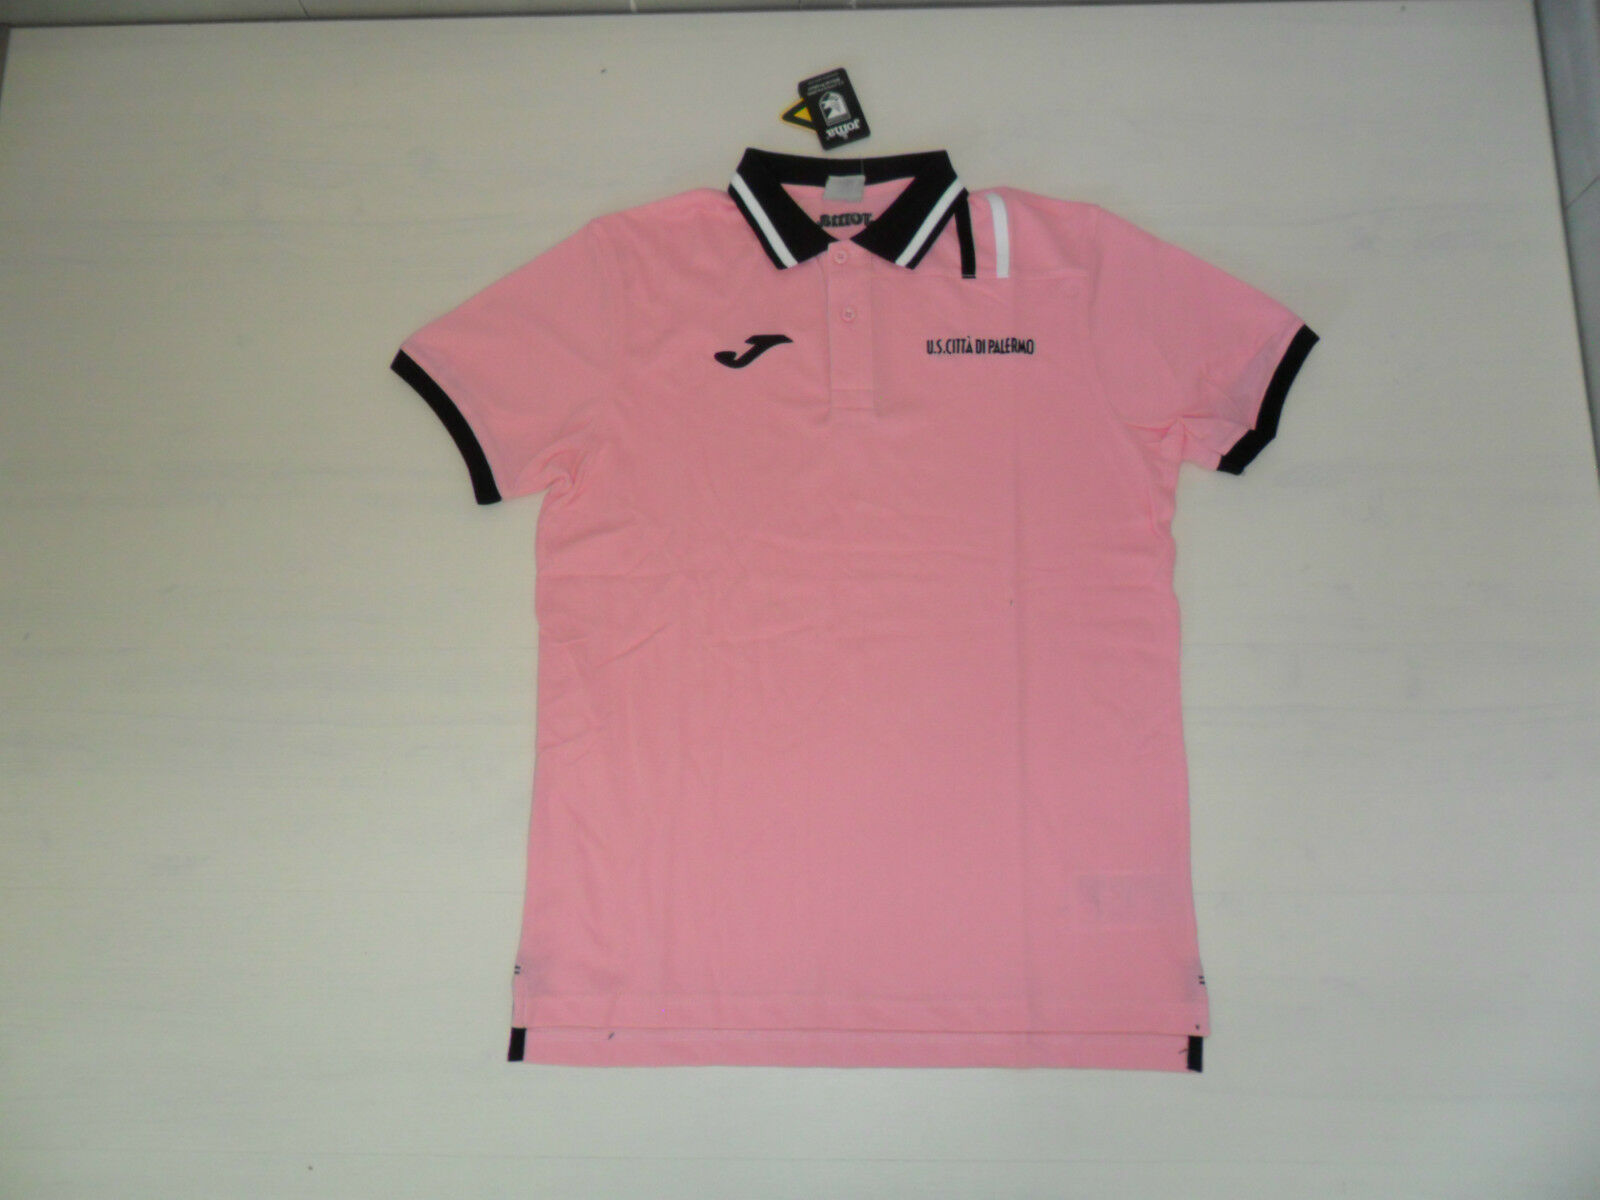 2145d0ca6 FW14 PALERMO JOMA S POLO RAPPRESENTANZA OFFICIAL PLAYERS SHIRT TOP JERSEY